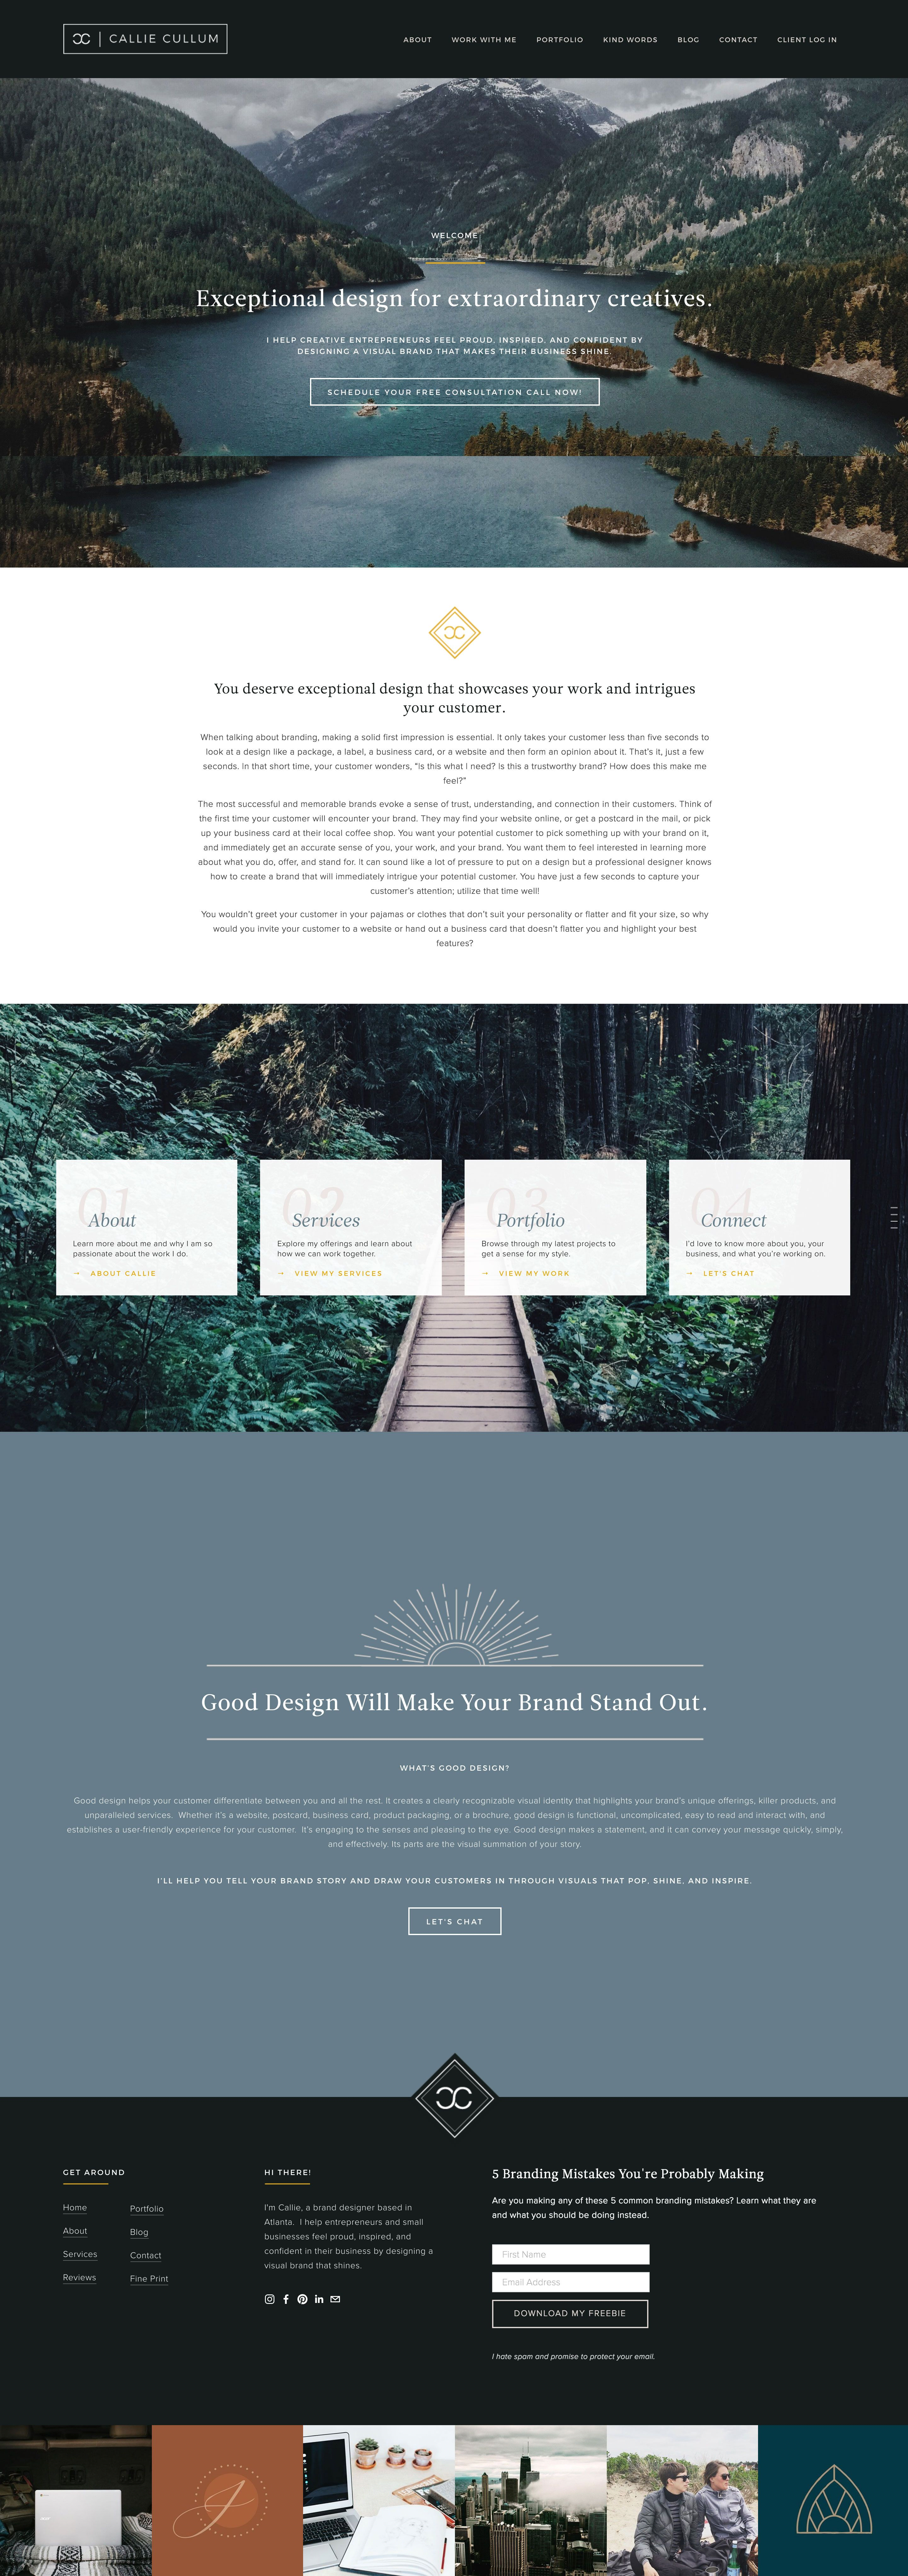 Modern Clean And Moody Website Design Graphic Web Designer Callie Cullum Small Business Branding Design And Business Website Design Web Design Design